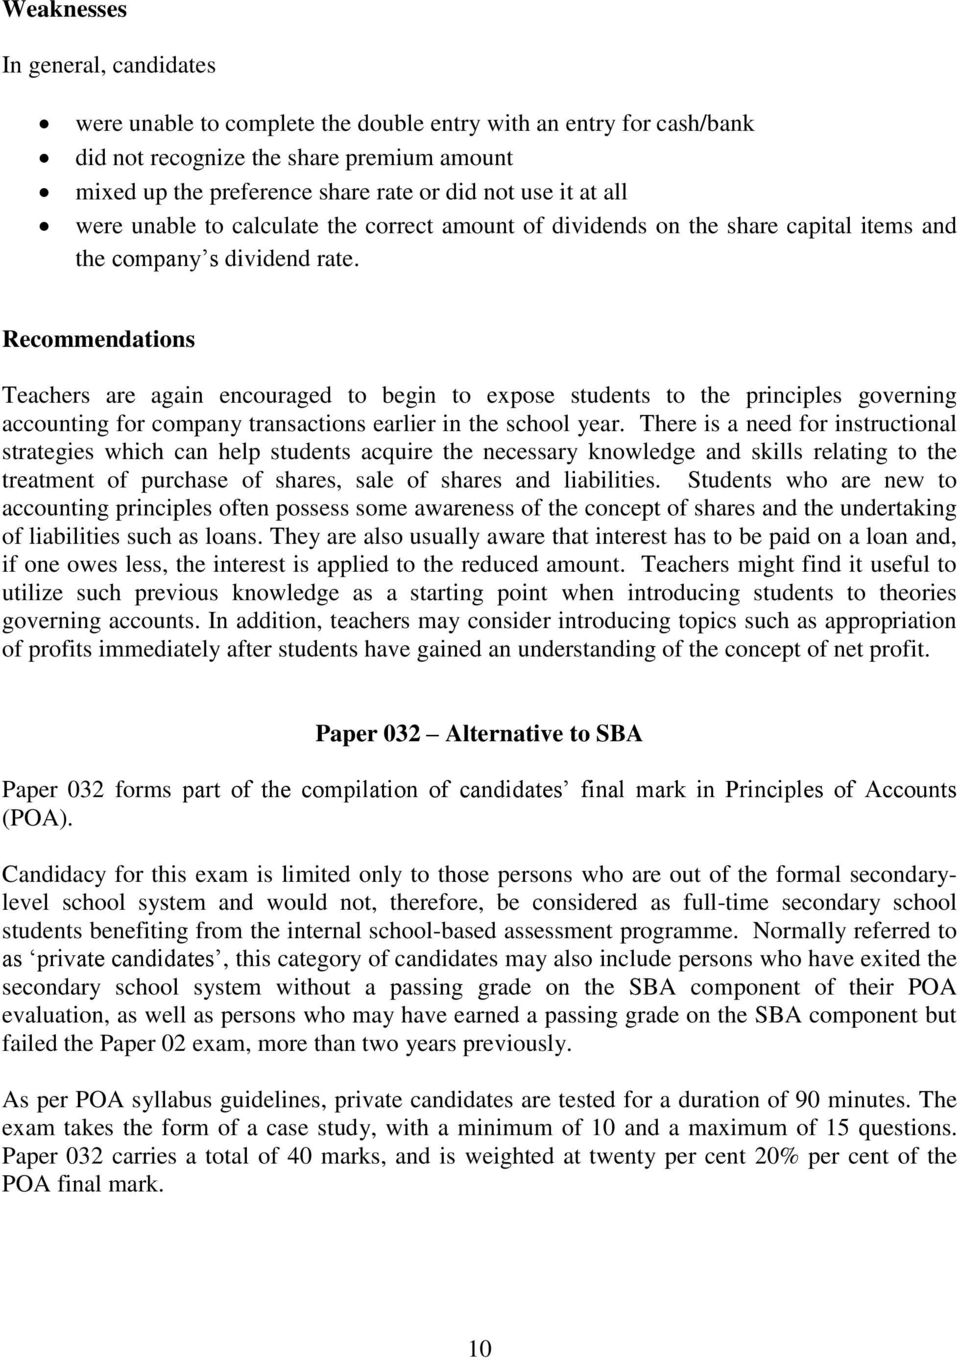 REPORT ON CANDIDATES WORK IN THE CARIBBEAN SECONDARY